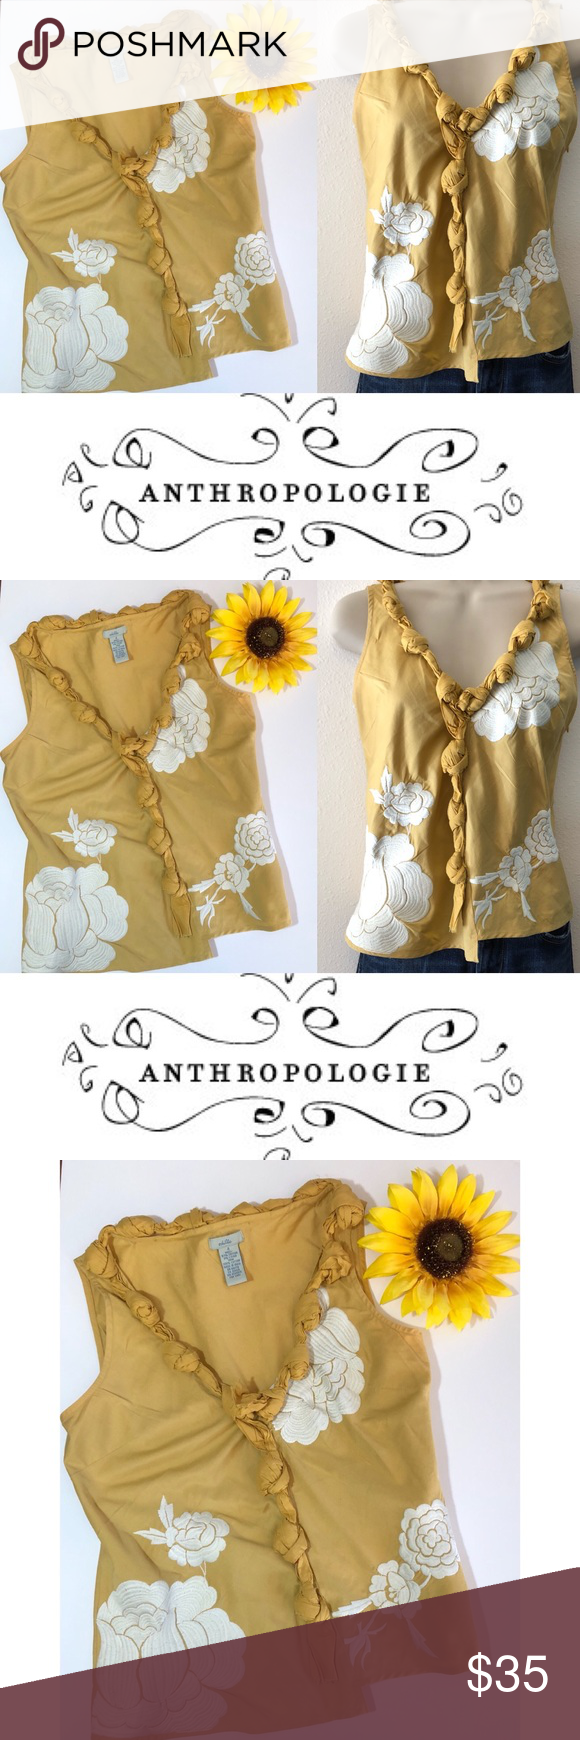 Anthropologie odille gold floral embroidered top gold top